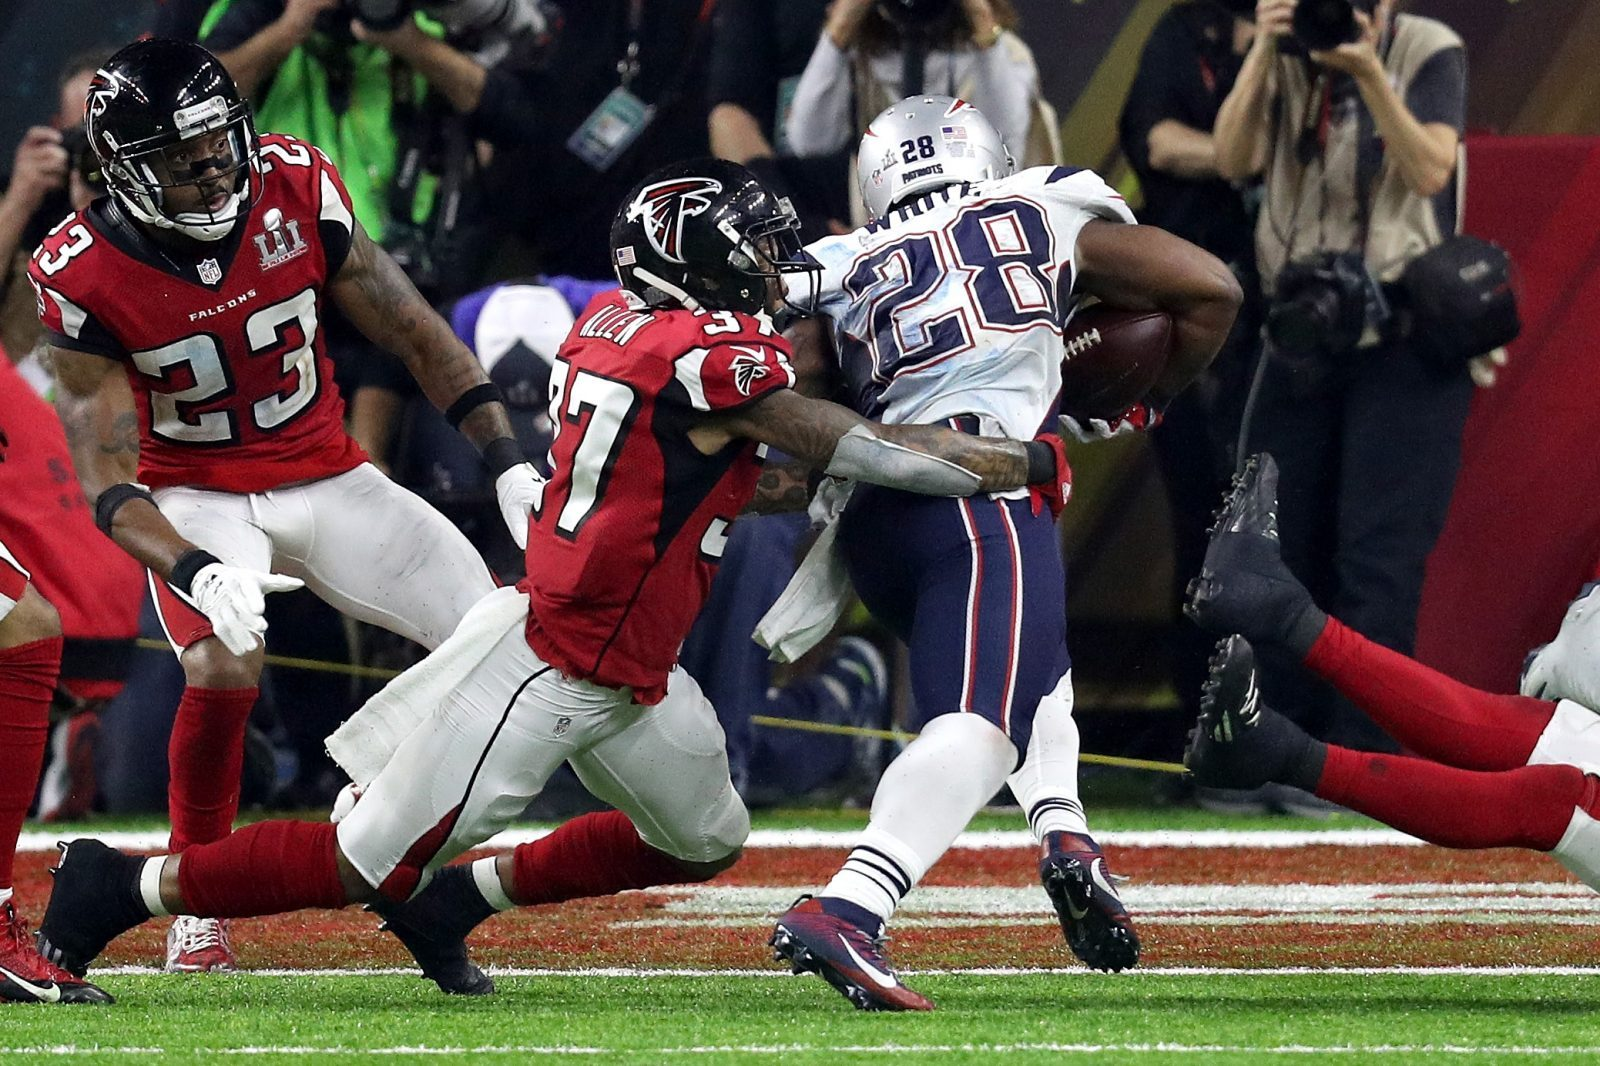 Patriots running back James White crosses the goal line for the game-winning touchdown in Super Bowl LI. (Getty Images)